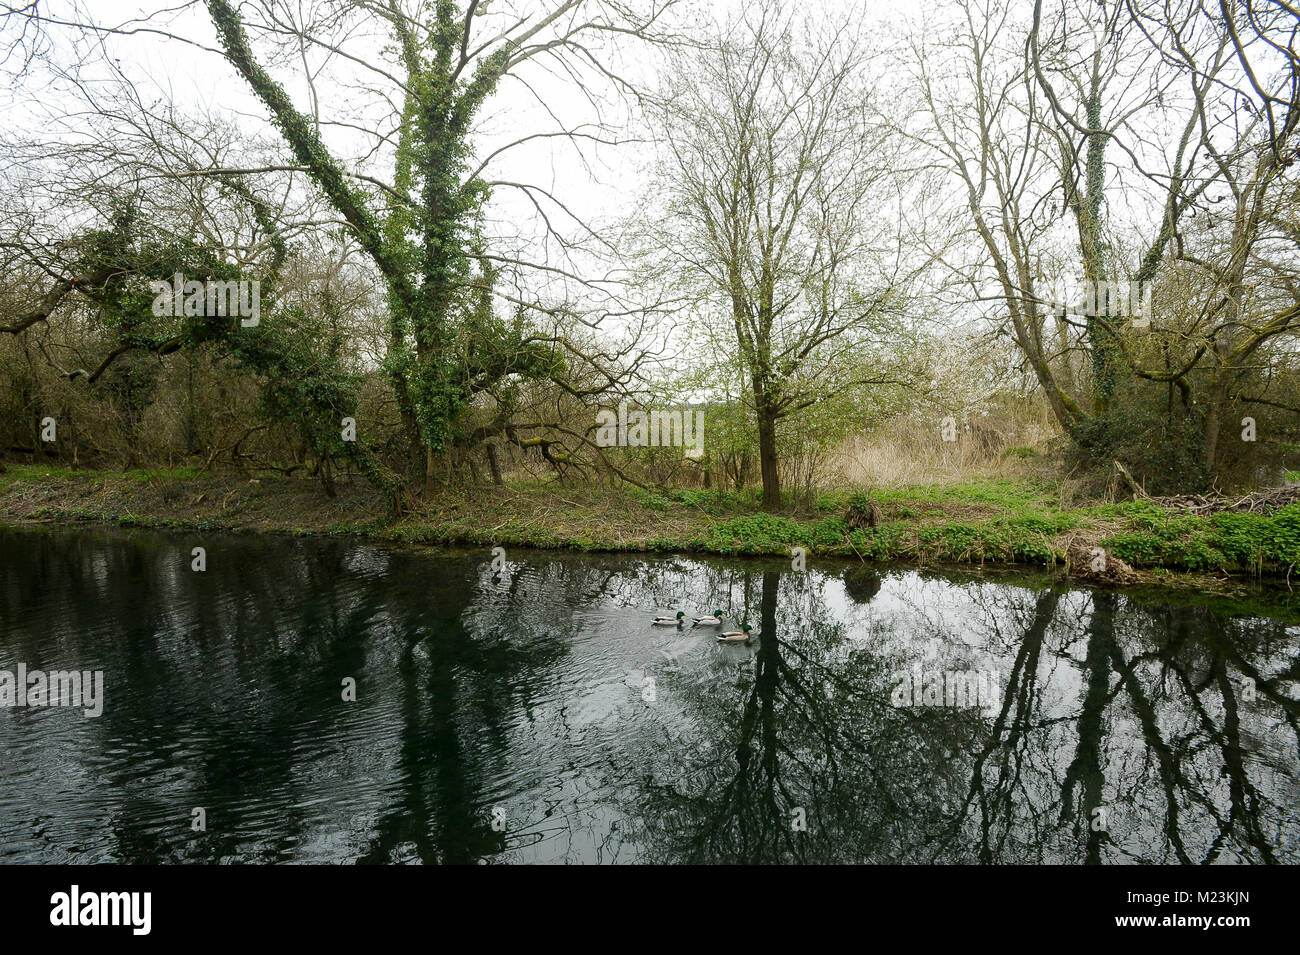 Basingstoke Canal in Odiham, Hampshire, England, United Kingdom. April 2nd 2015 © Wojciech Strozyk / Alamy - Stock Image